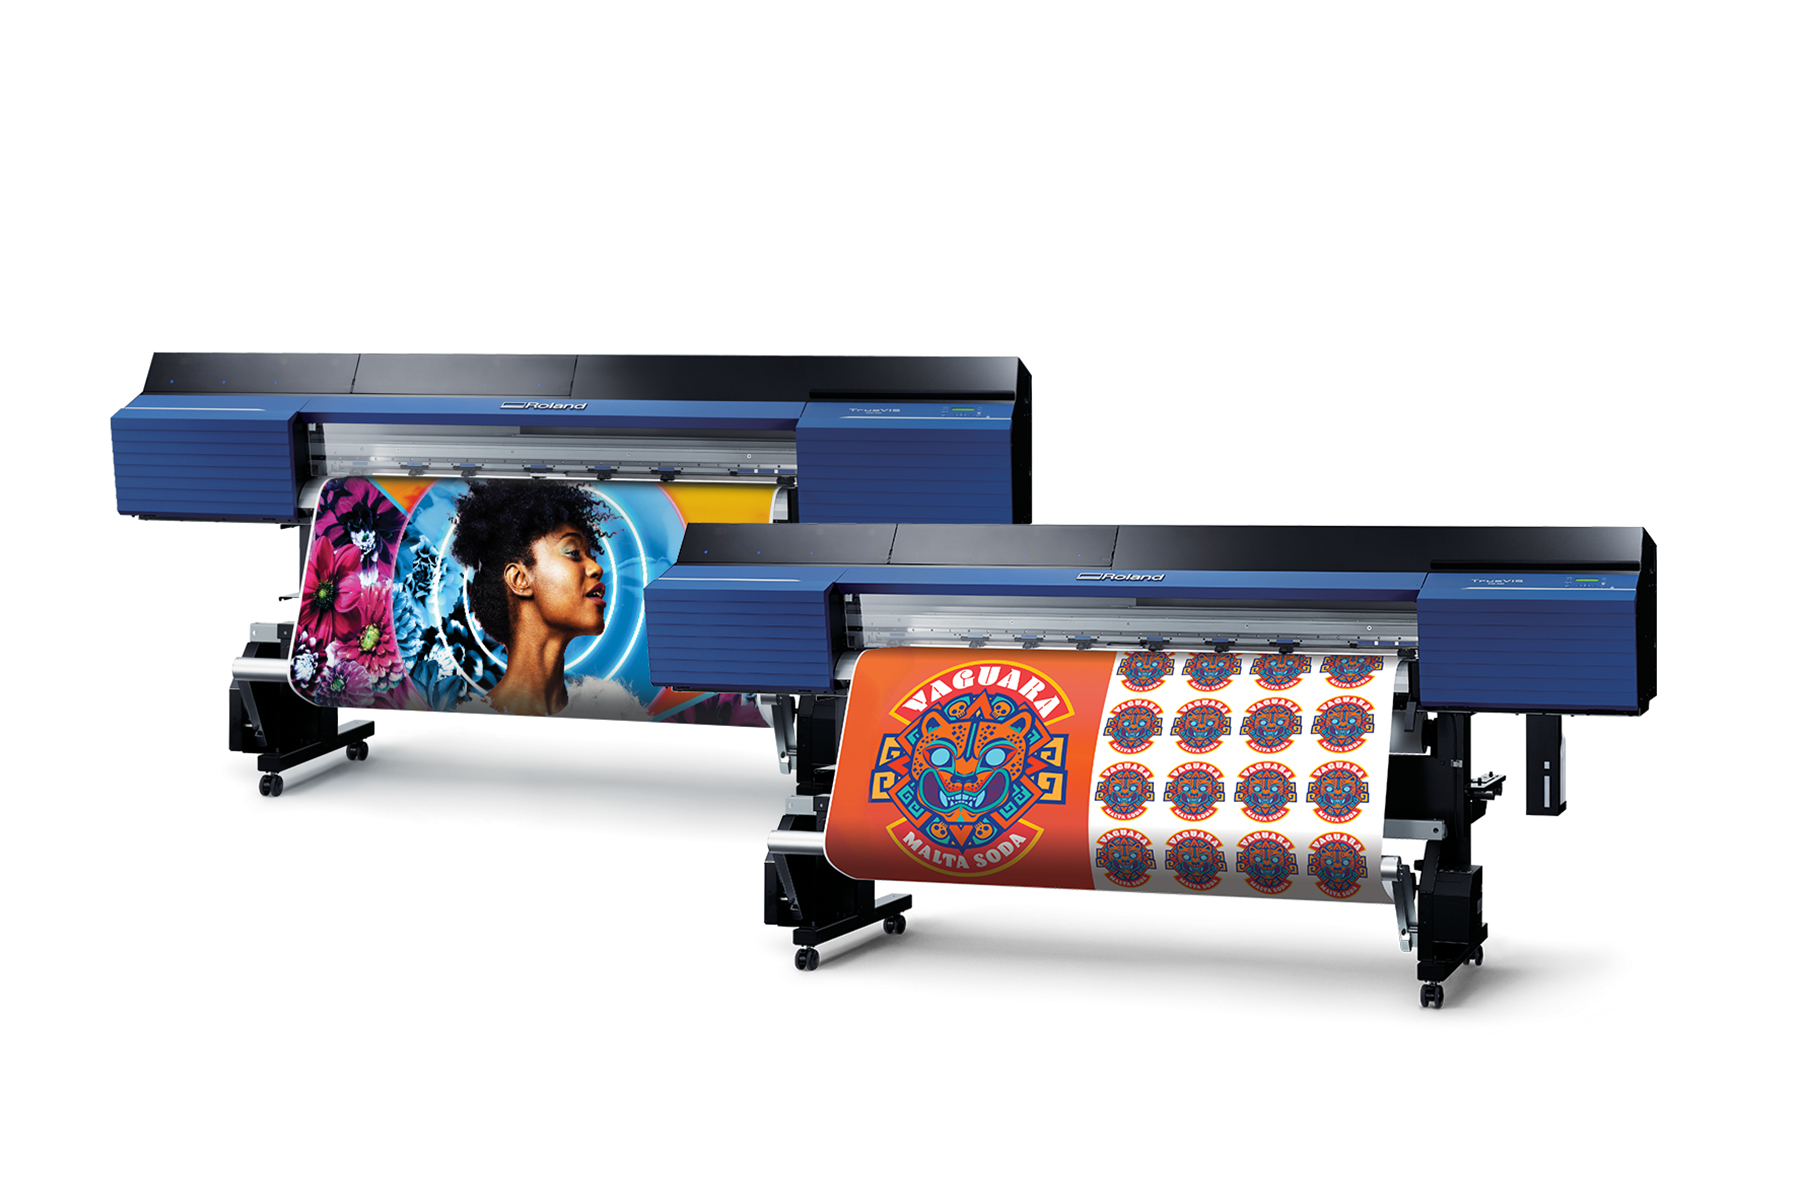 NEW_Roland_TrueVIS_VG2_series_wide-format_eco-solvent_printer_cutters